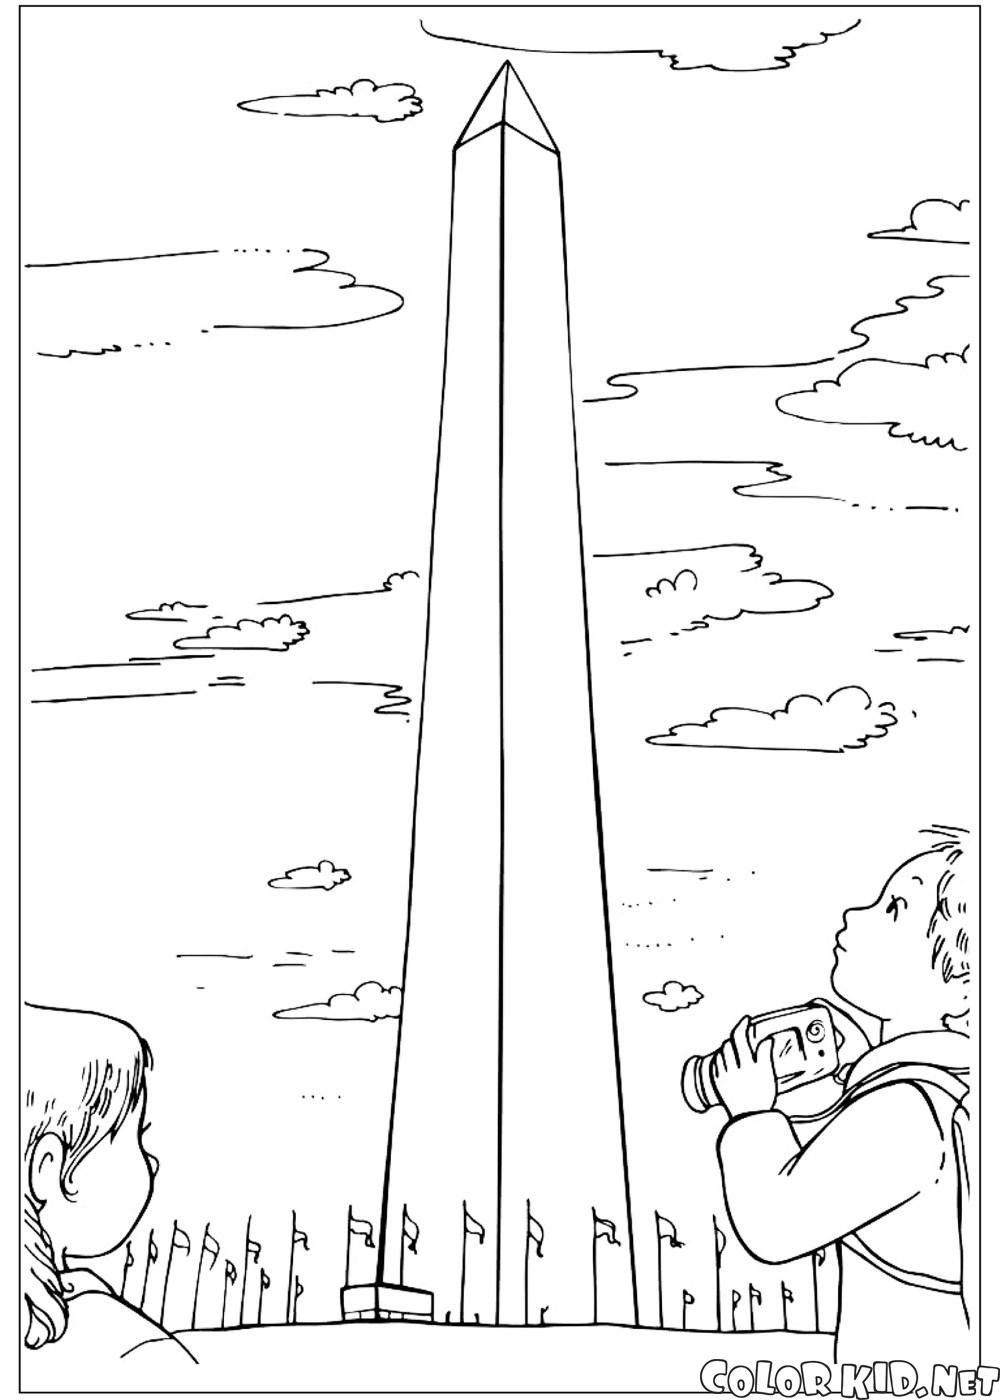 Coloring page - Washington Monument